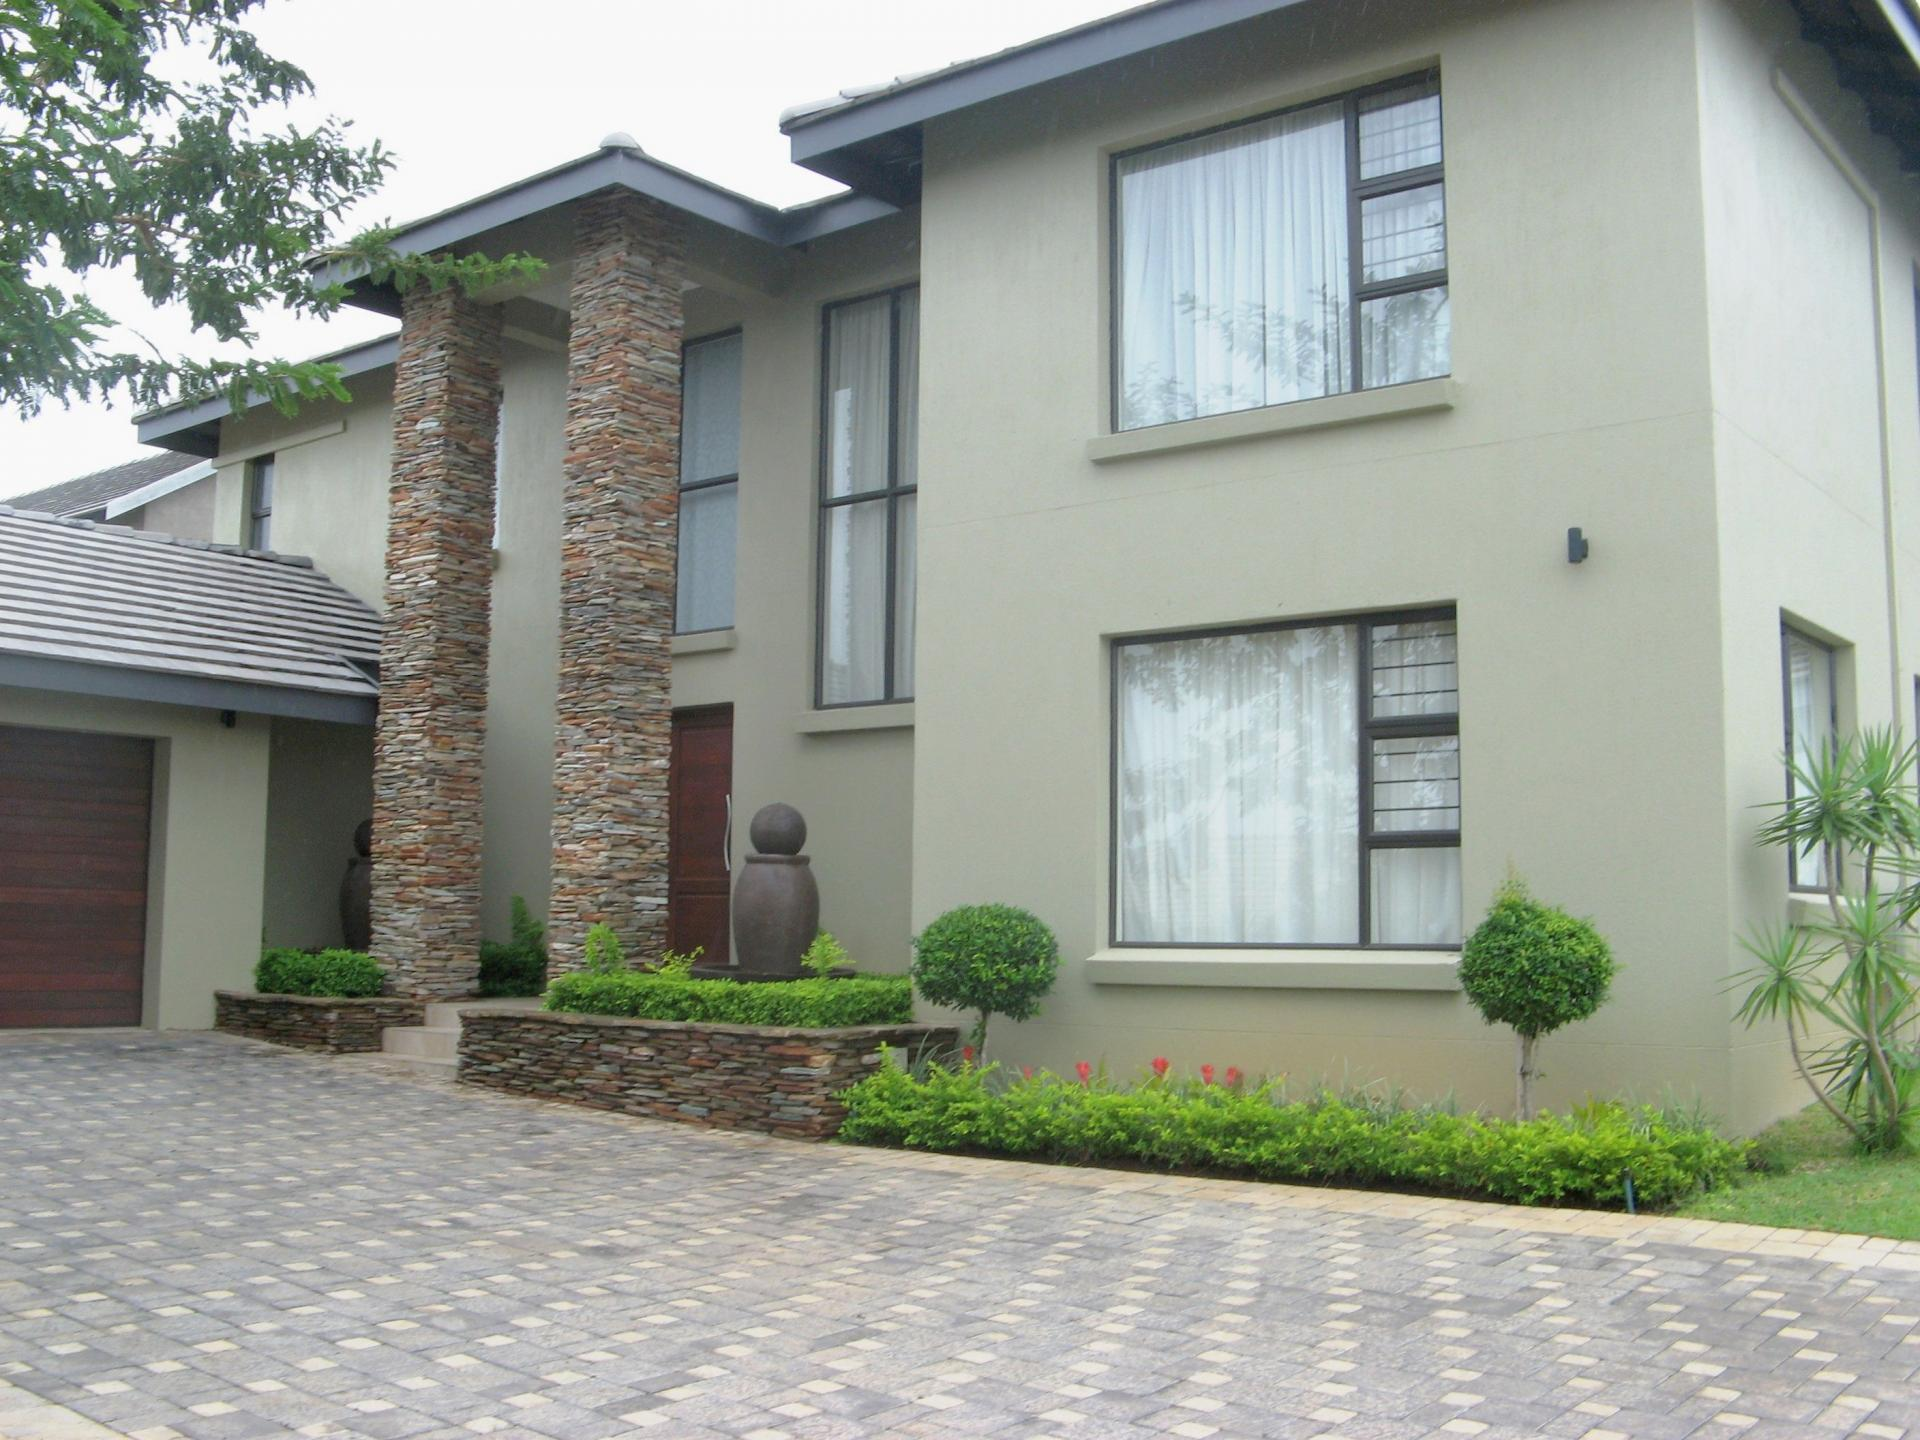 4 Bedroom House For Sale In Nelspruit